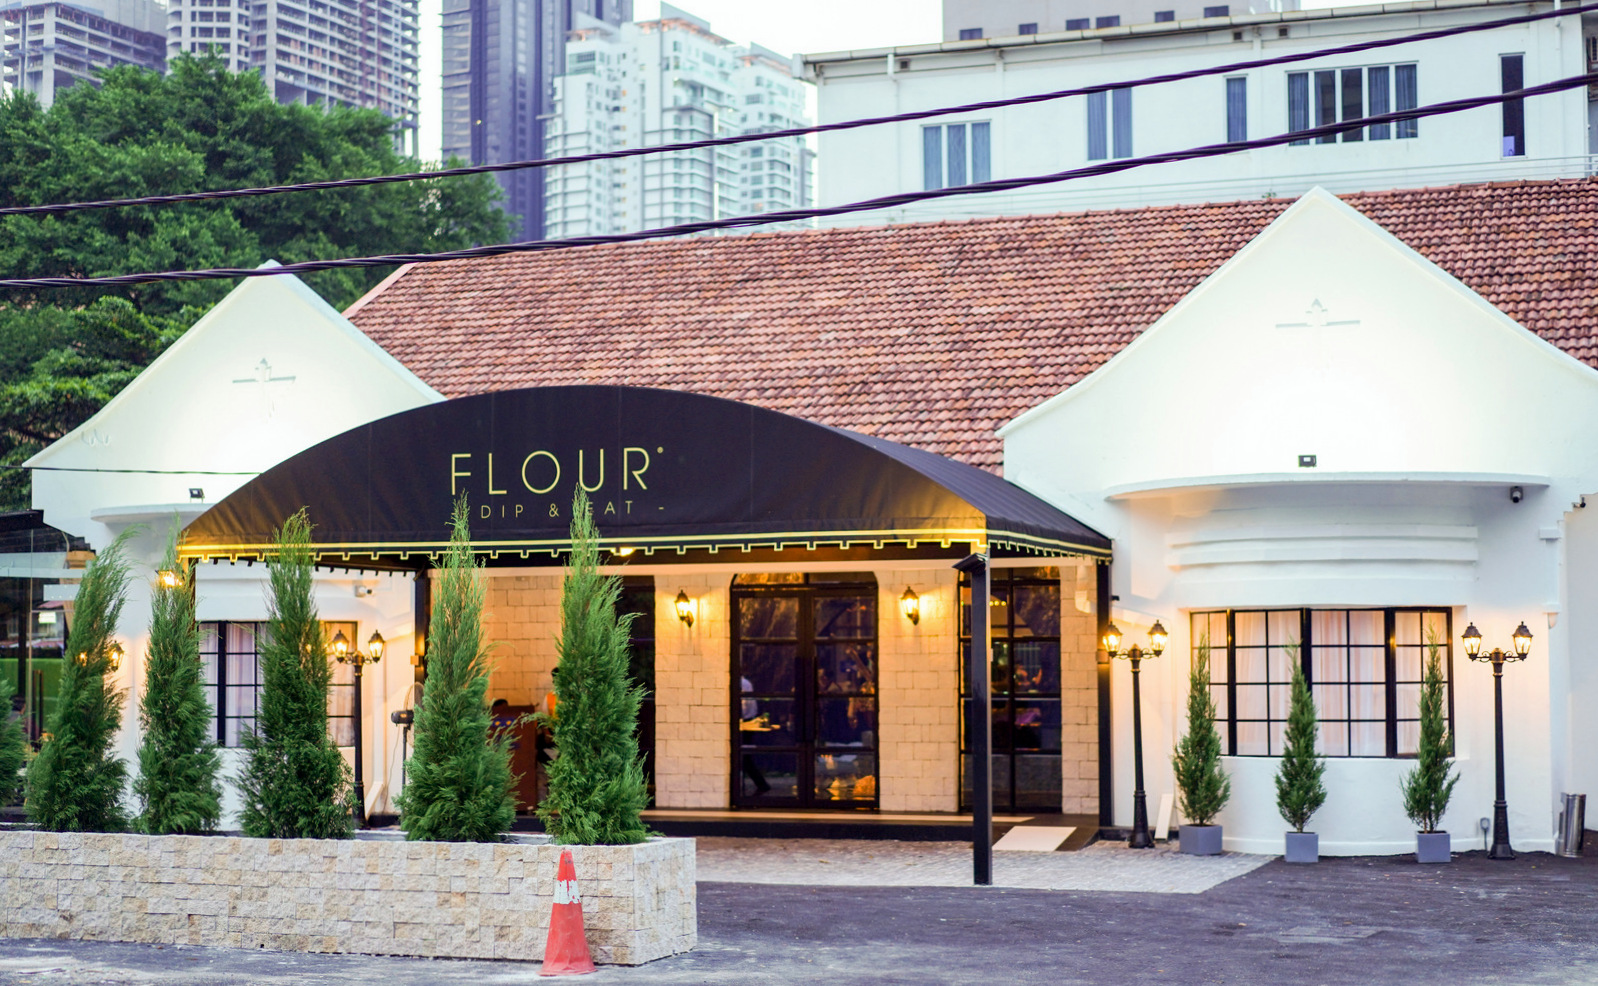 flour unveils new home, unleashes fresh formulas for indian food